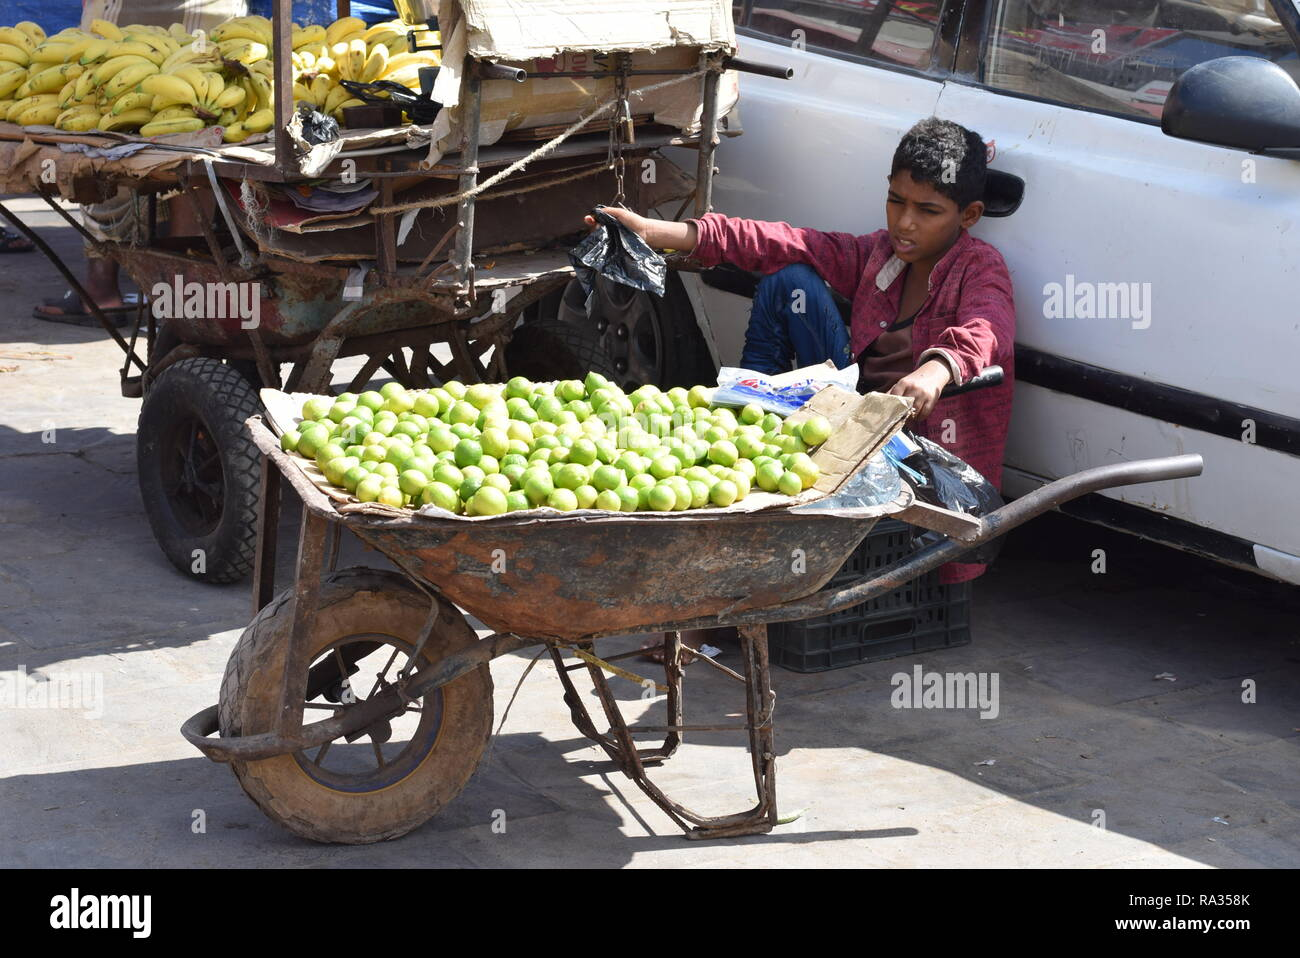 Aden, Yemen. 31st Dec, 2018. A young fruit vender waits for customers in the southern port city of Aden, Yemen, Dec. 31, 2018. In 2018, Yemen experienced dramatic escalation of the internal military conflict, severe collapse of the country's national currency and an outbreak of acute diseases. Yemeni people also suffered skyrocketing prices of basic commodities and lack of basic services, including clean water and electricity. TO GO WITH Spotlight: Yemenis to receive new year amid hard challenges, devastating civil war Credit: Murad Abdo/Xinhua/Alamy Live News - Stock Image